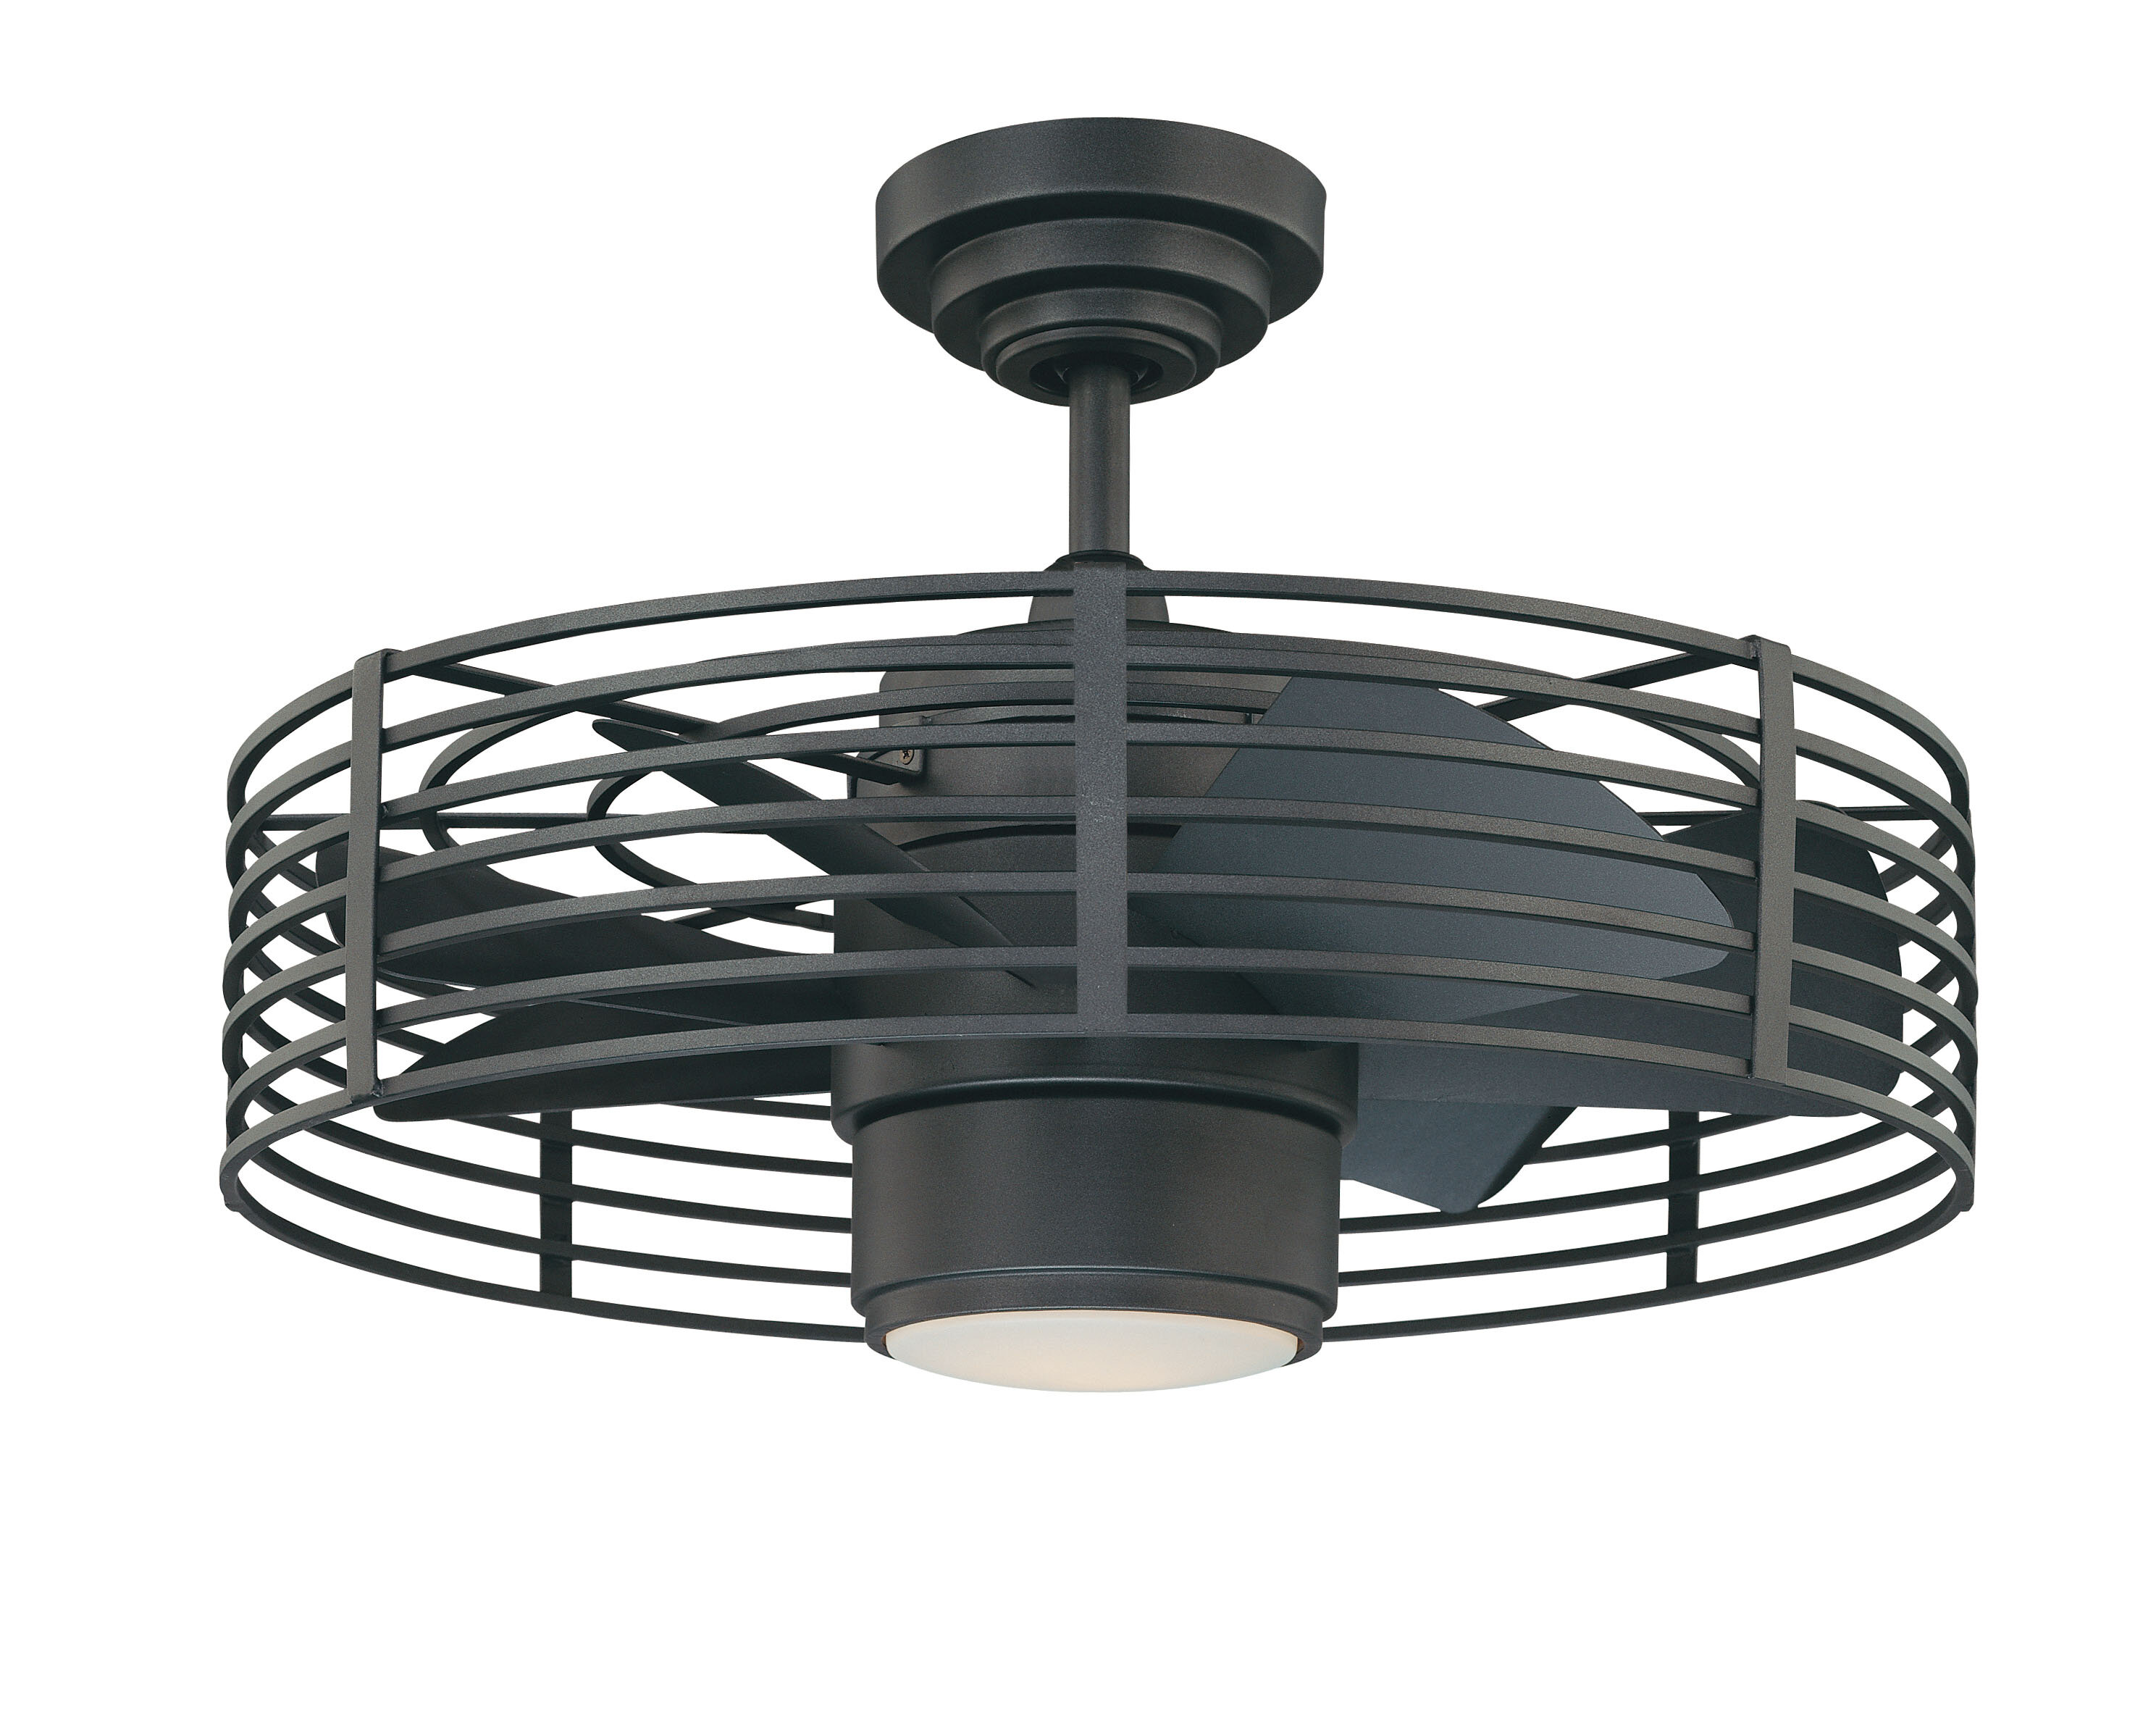 Birch Lane 23 Flara 7 Blade Caged Ceiling Fan With Remote Control And Light Kit Included Reviews Wayfair